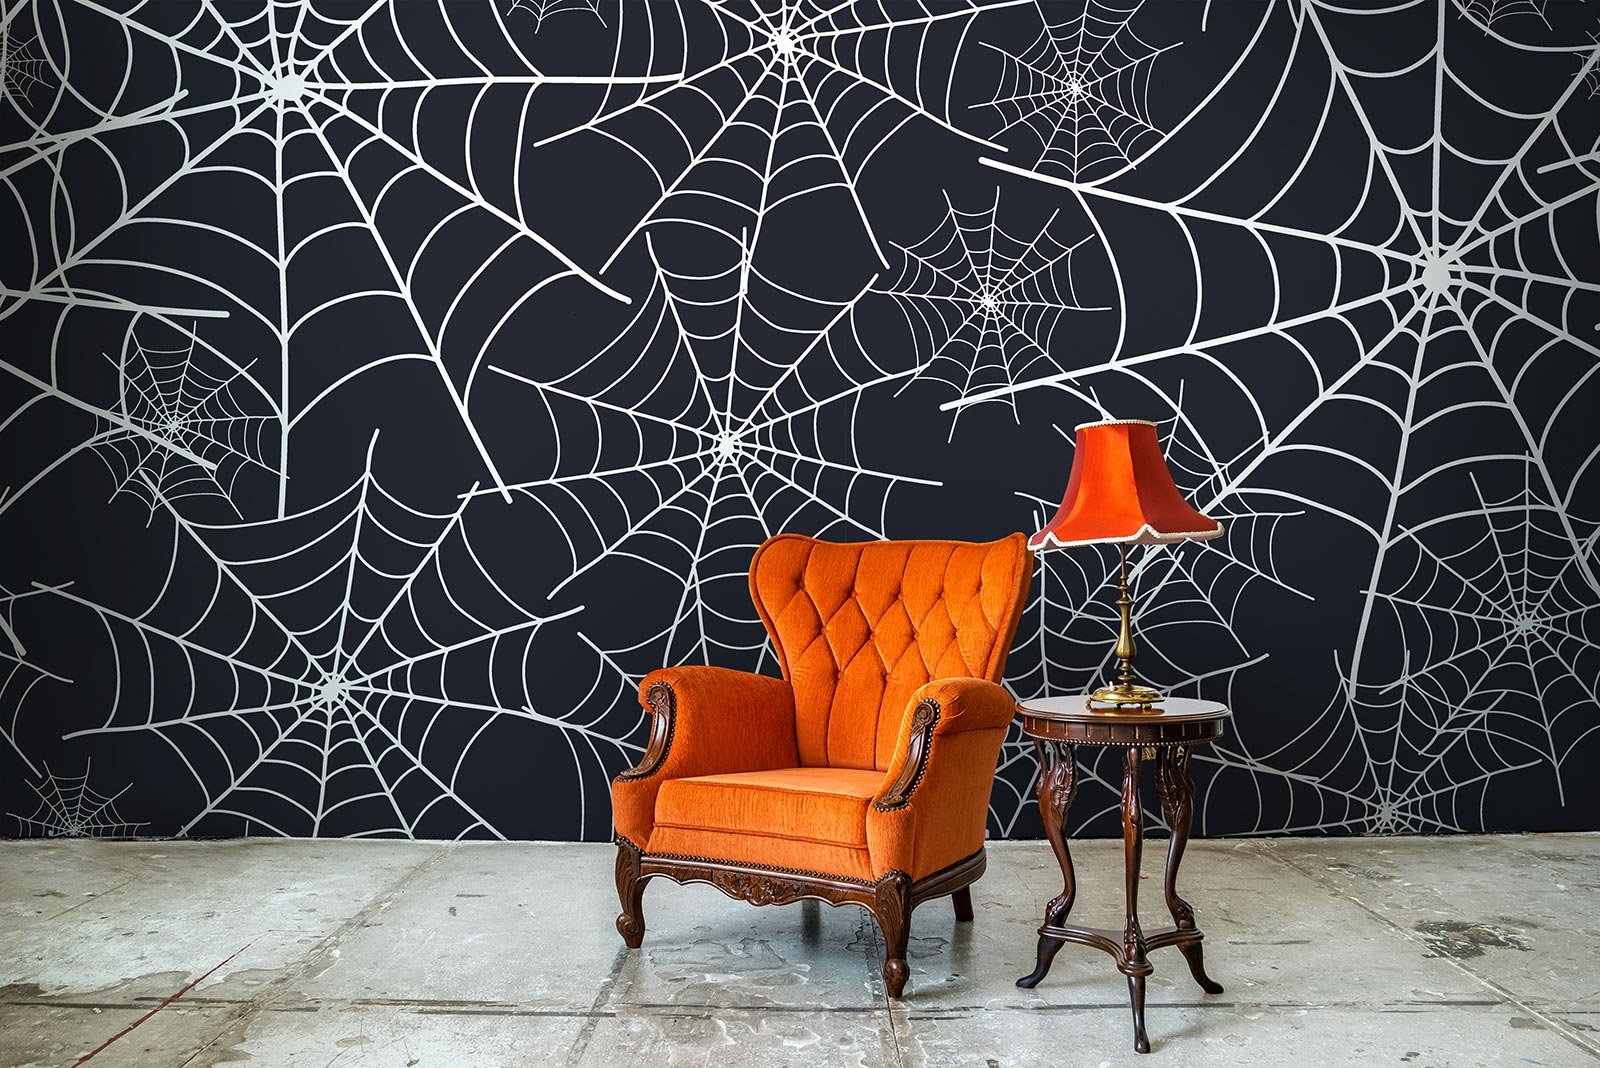 Halloween Spider Web Decorations